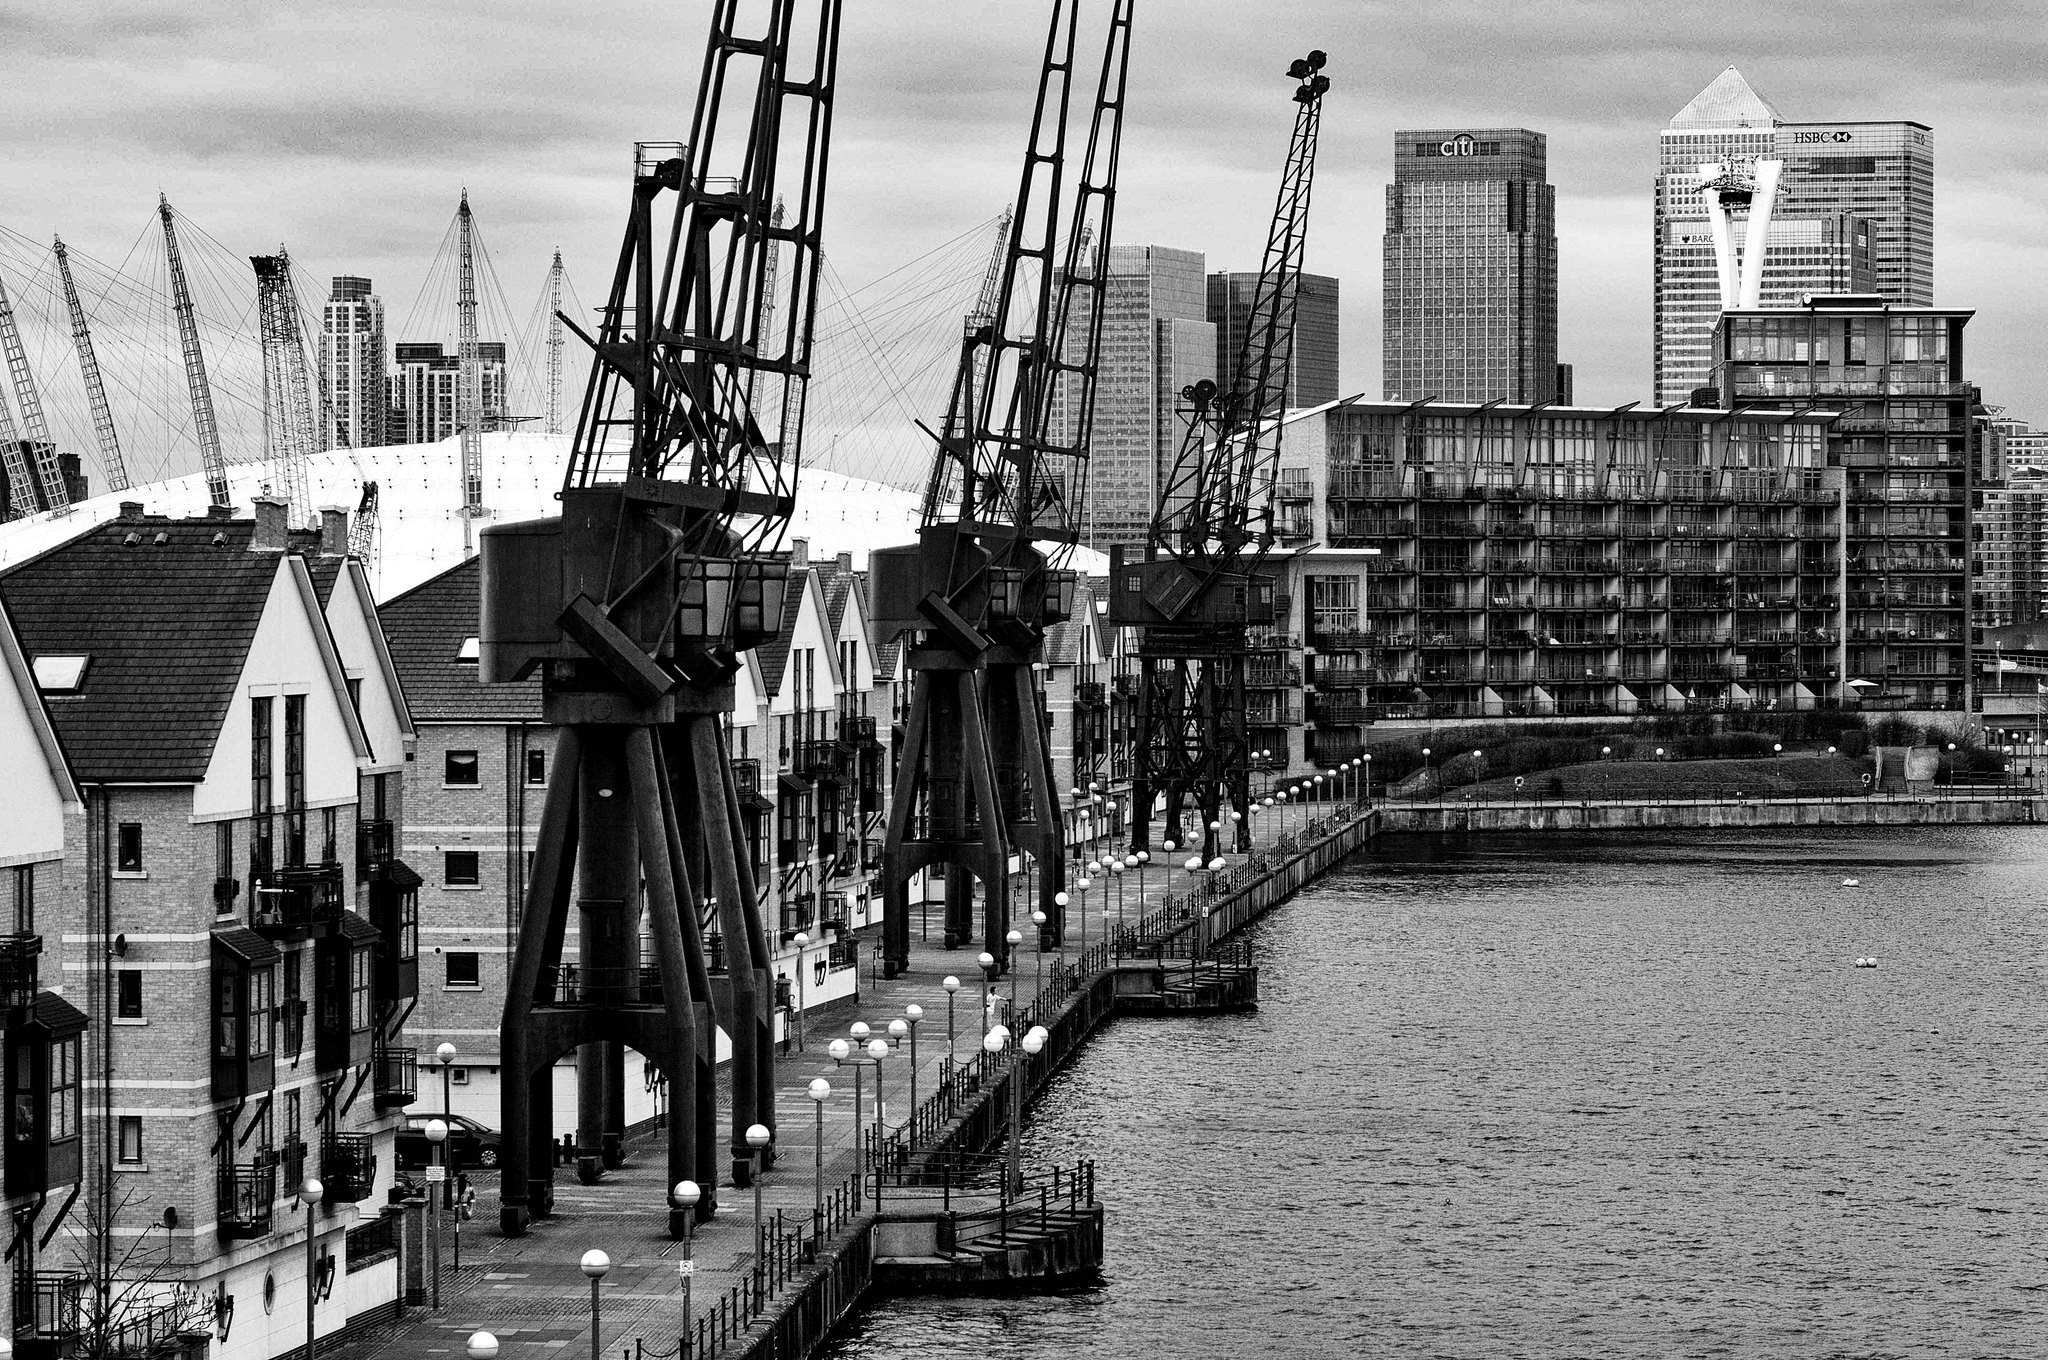 London Dockland Structures 2012